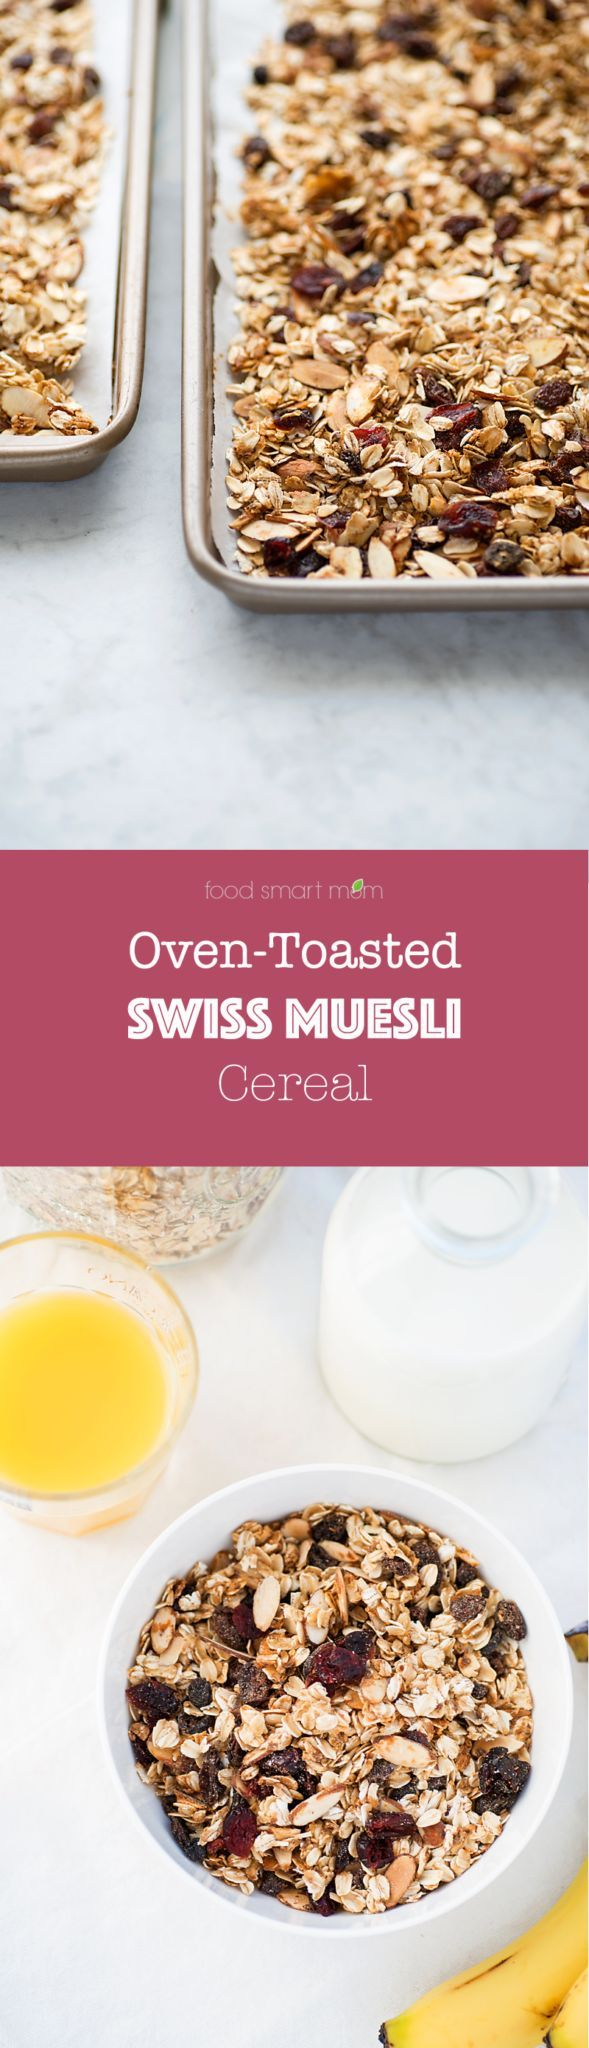 Swiss Muesli. Toasted oats, almonds, flaxseed, sesame seeds, raisins and cranberries create a healthy Swiss muesli cereal that's rich in protein and low in sugar. Serve with yogurt, milk, or juice.